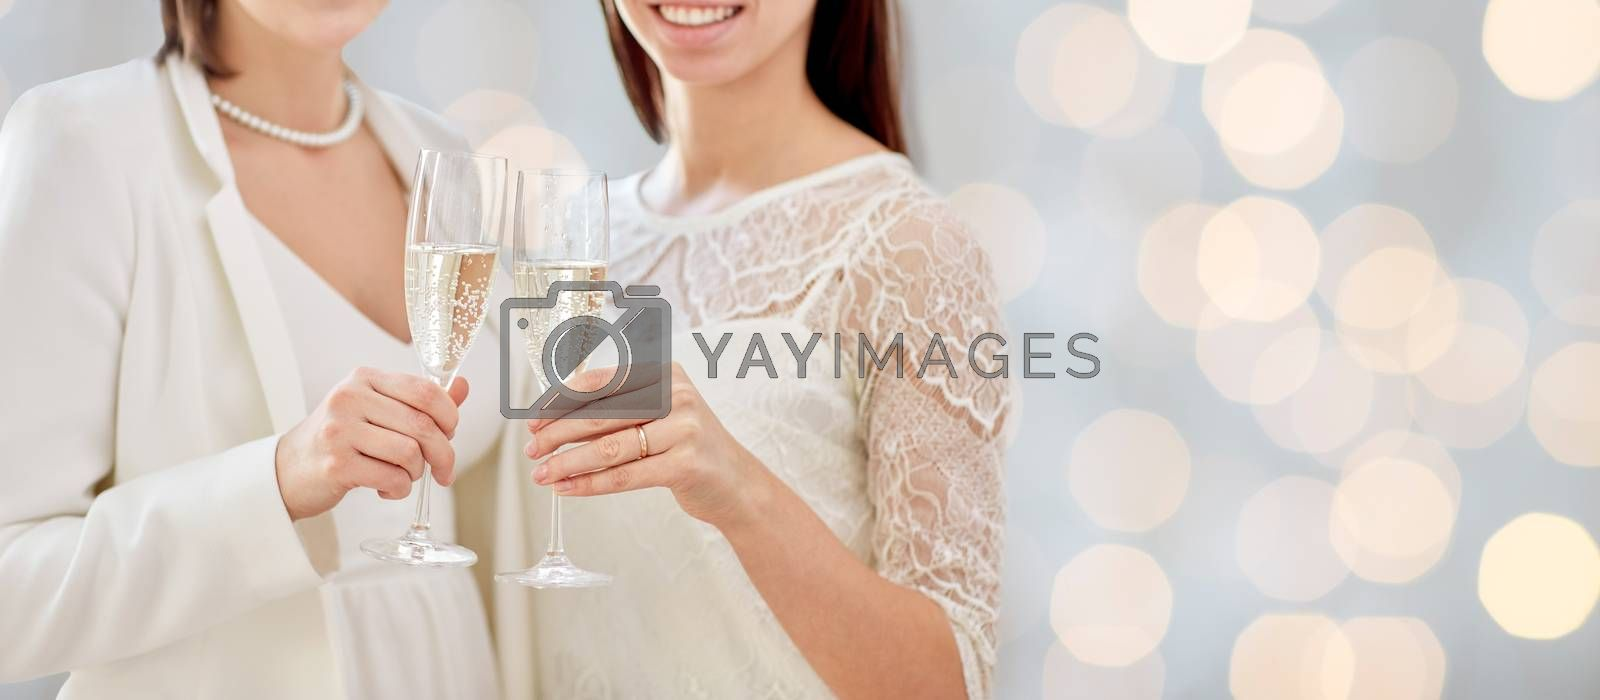 people, homosexuality, same-sex marriage, celebration and love concept - close up of happy married lesbian couple holding and clinking champagne glasses over holidays lights background